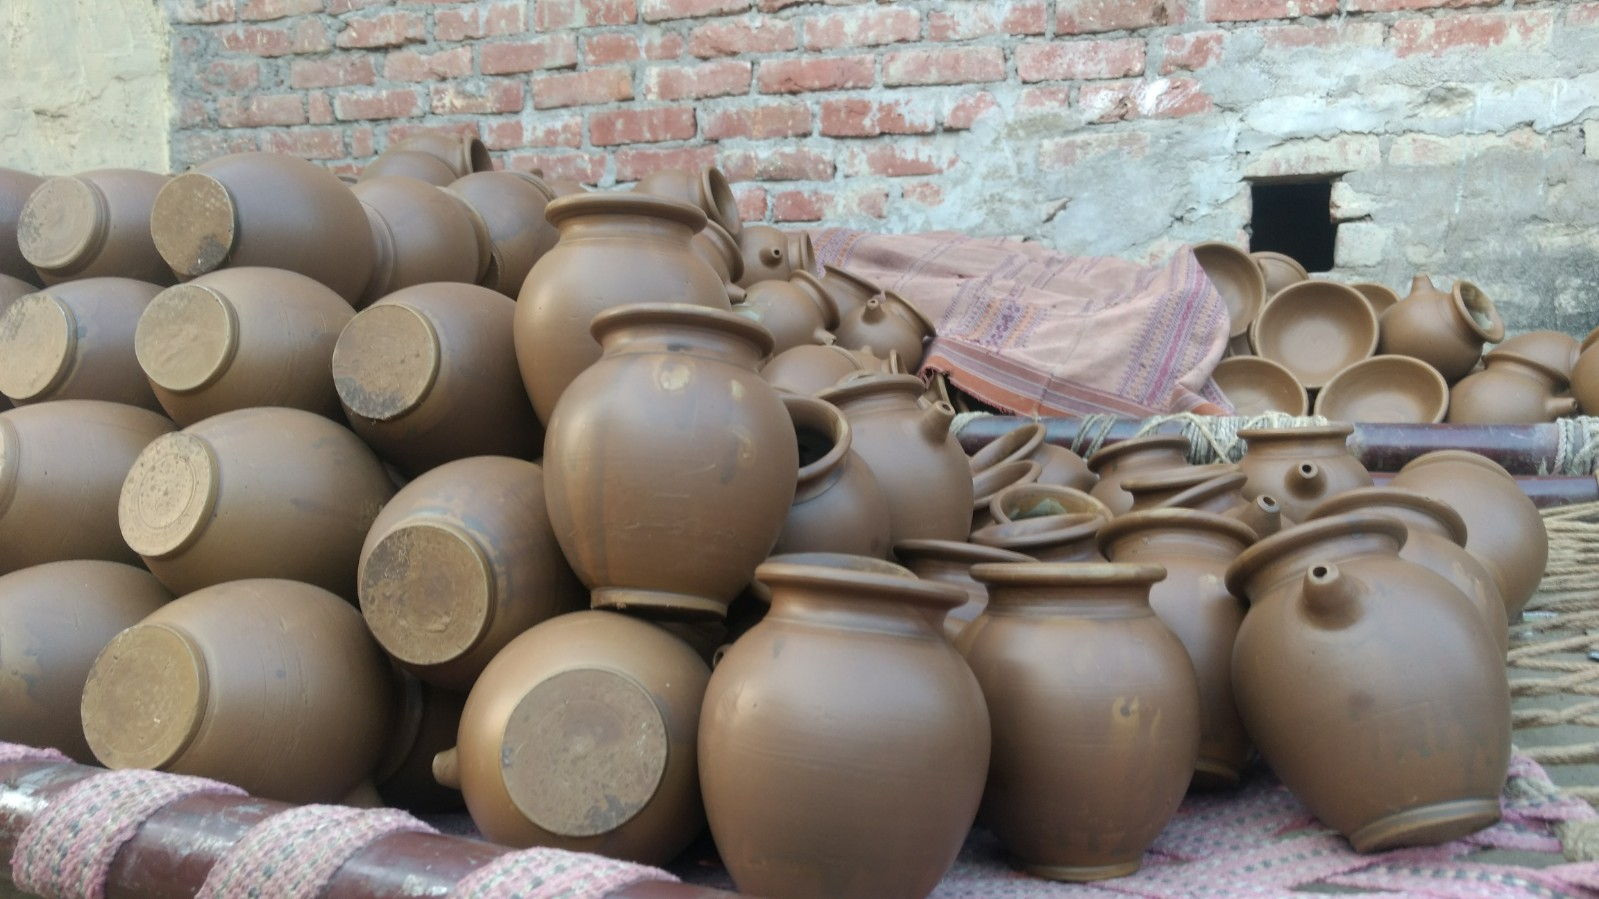 The black clay pottery that Nizamabad is famous for. Credit: Titash Sen